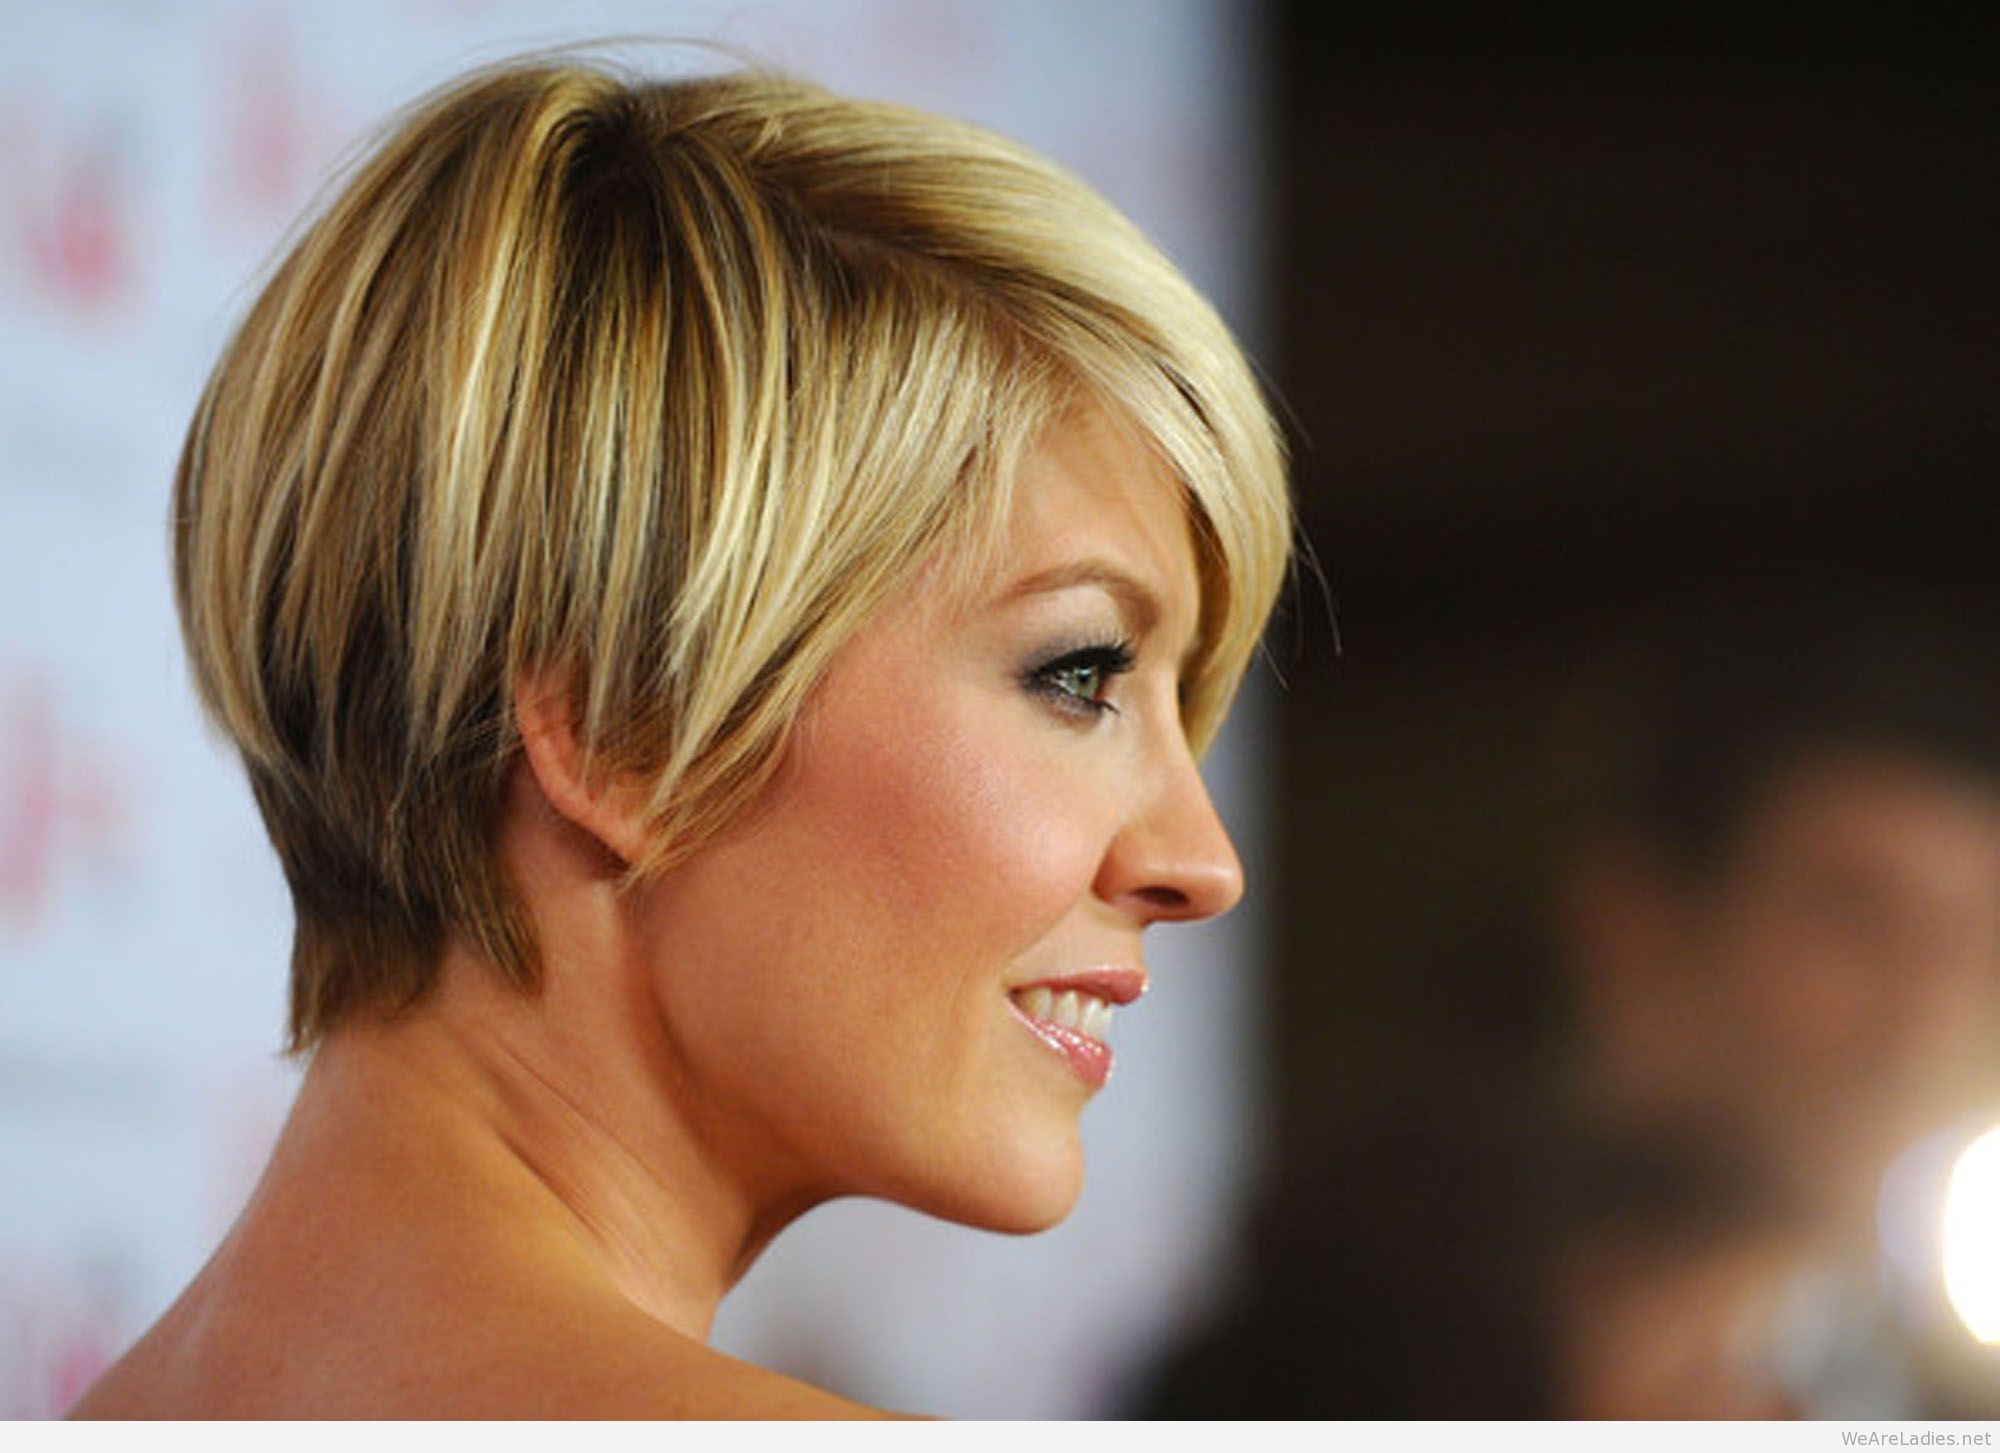 Short Hairstyles For Women Over 60 Short Haircuts For Women With Fine Hair 60  Shorthairstylesfor